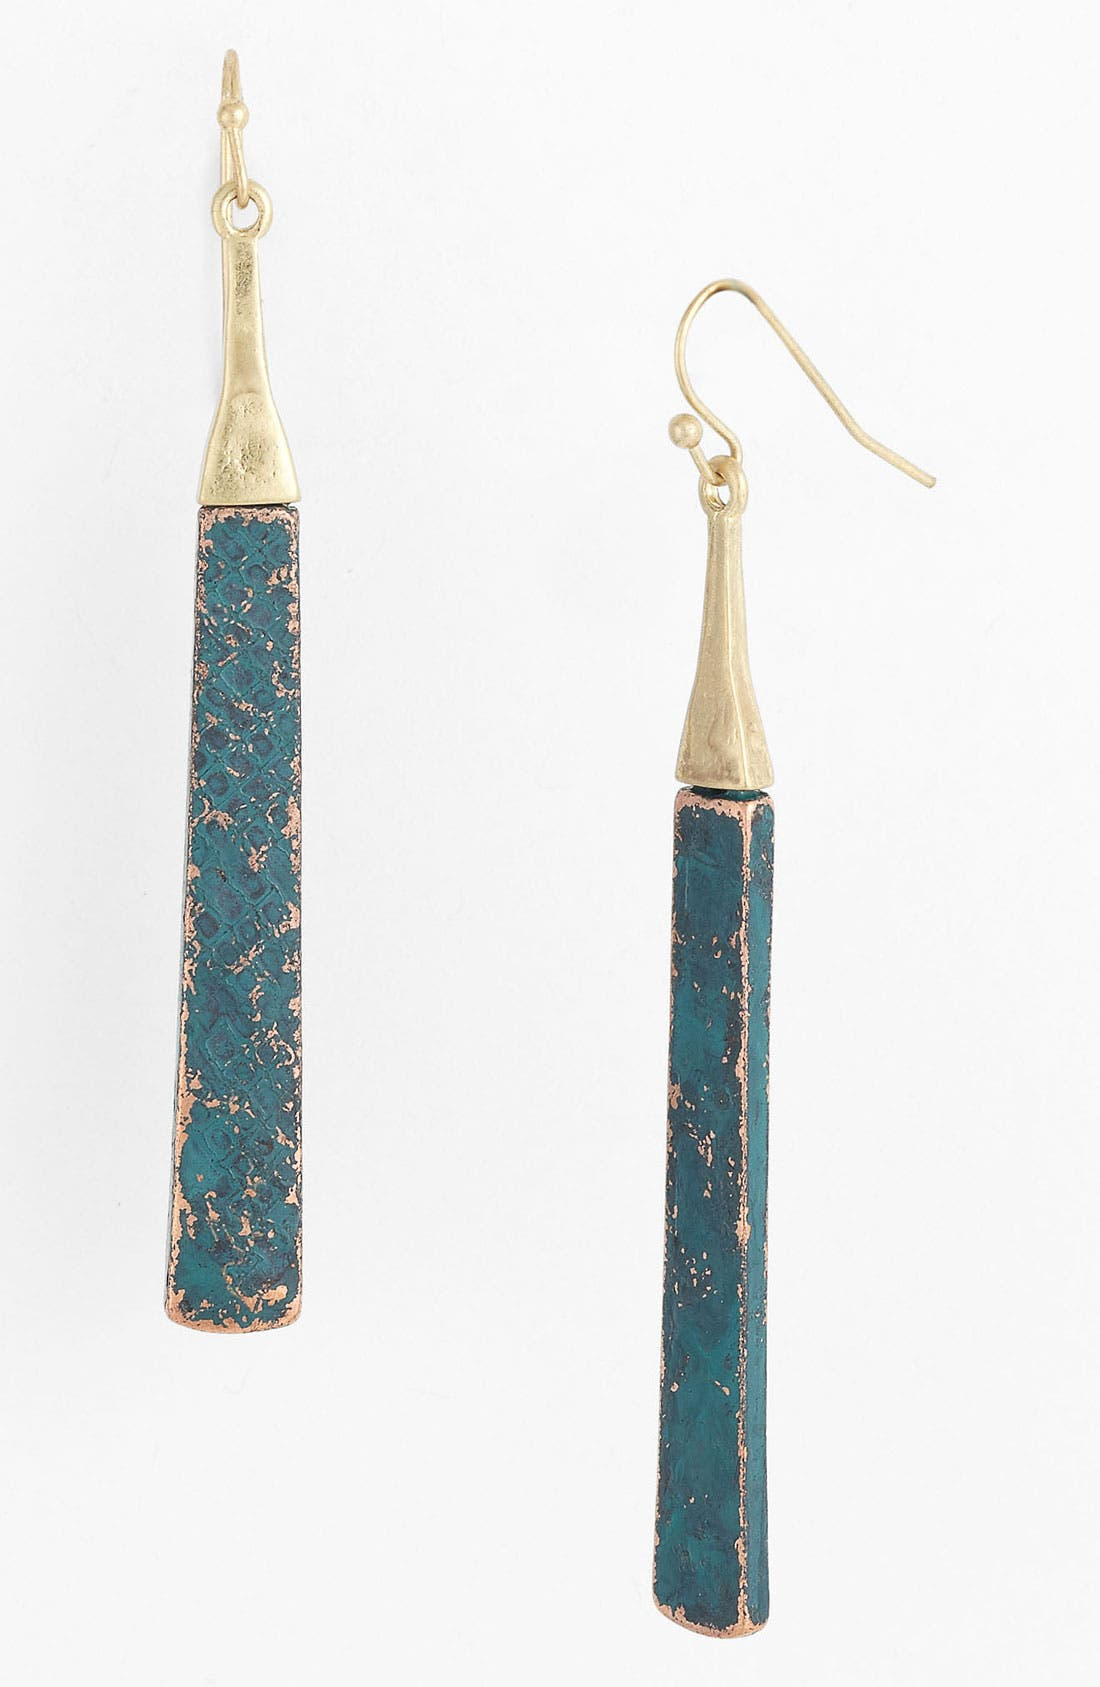 Main Image - Panacea Patina Stick Earrings